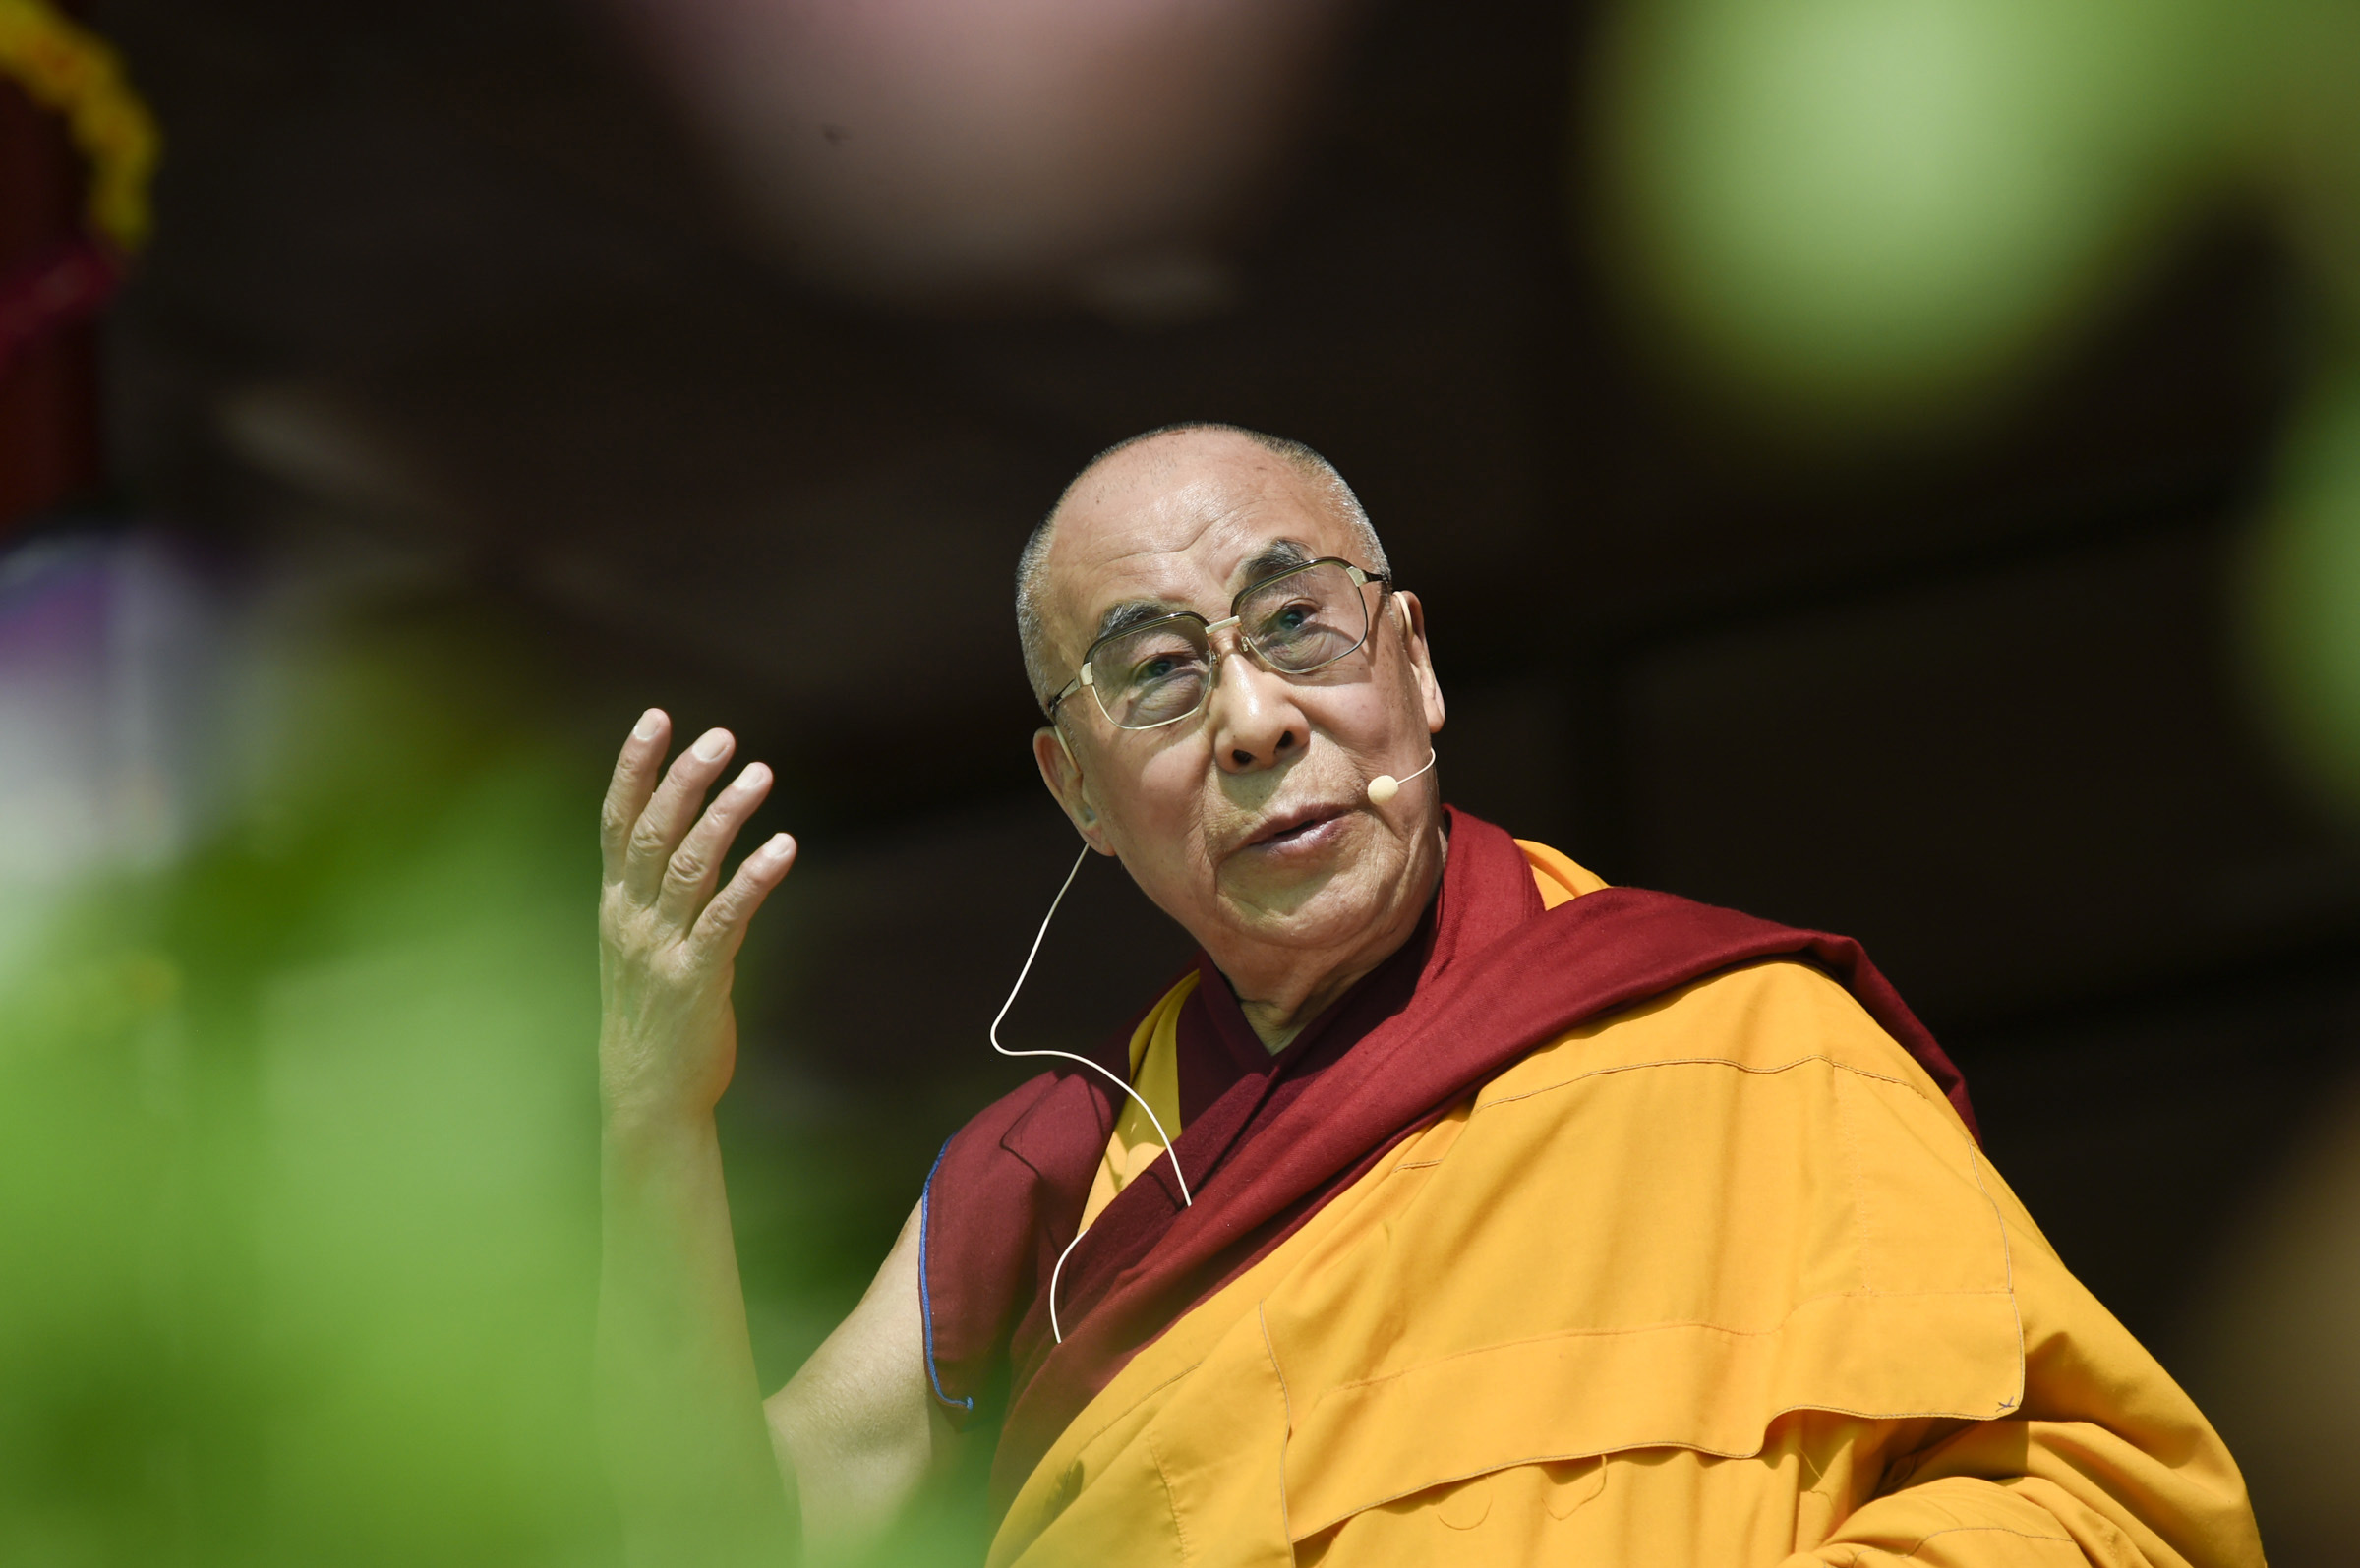 Kalachakra crowd greets Dalai Lama on his 79th birthday